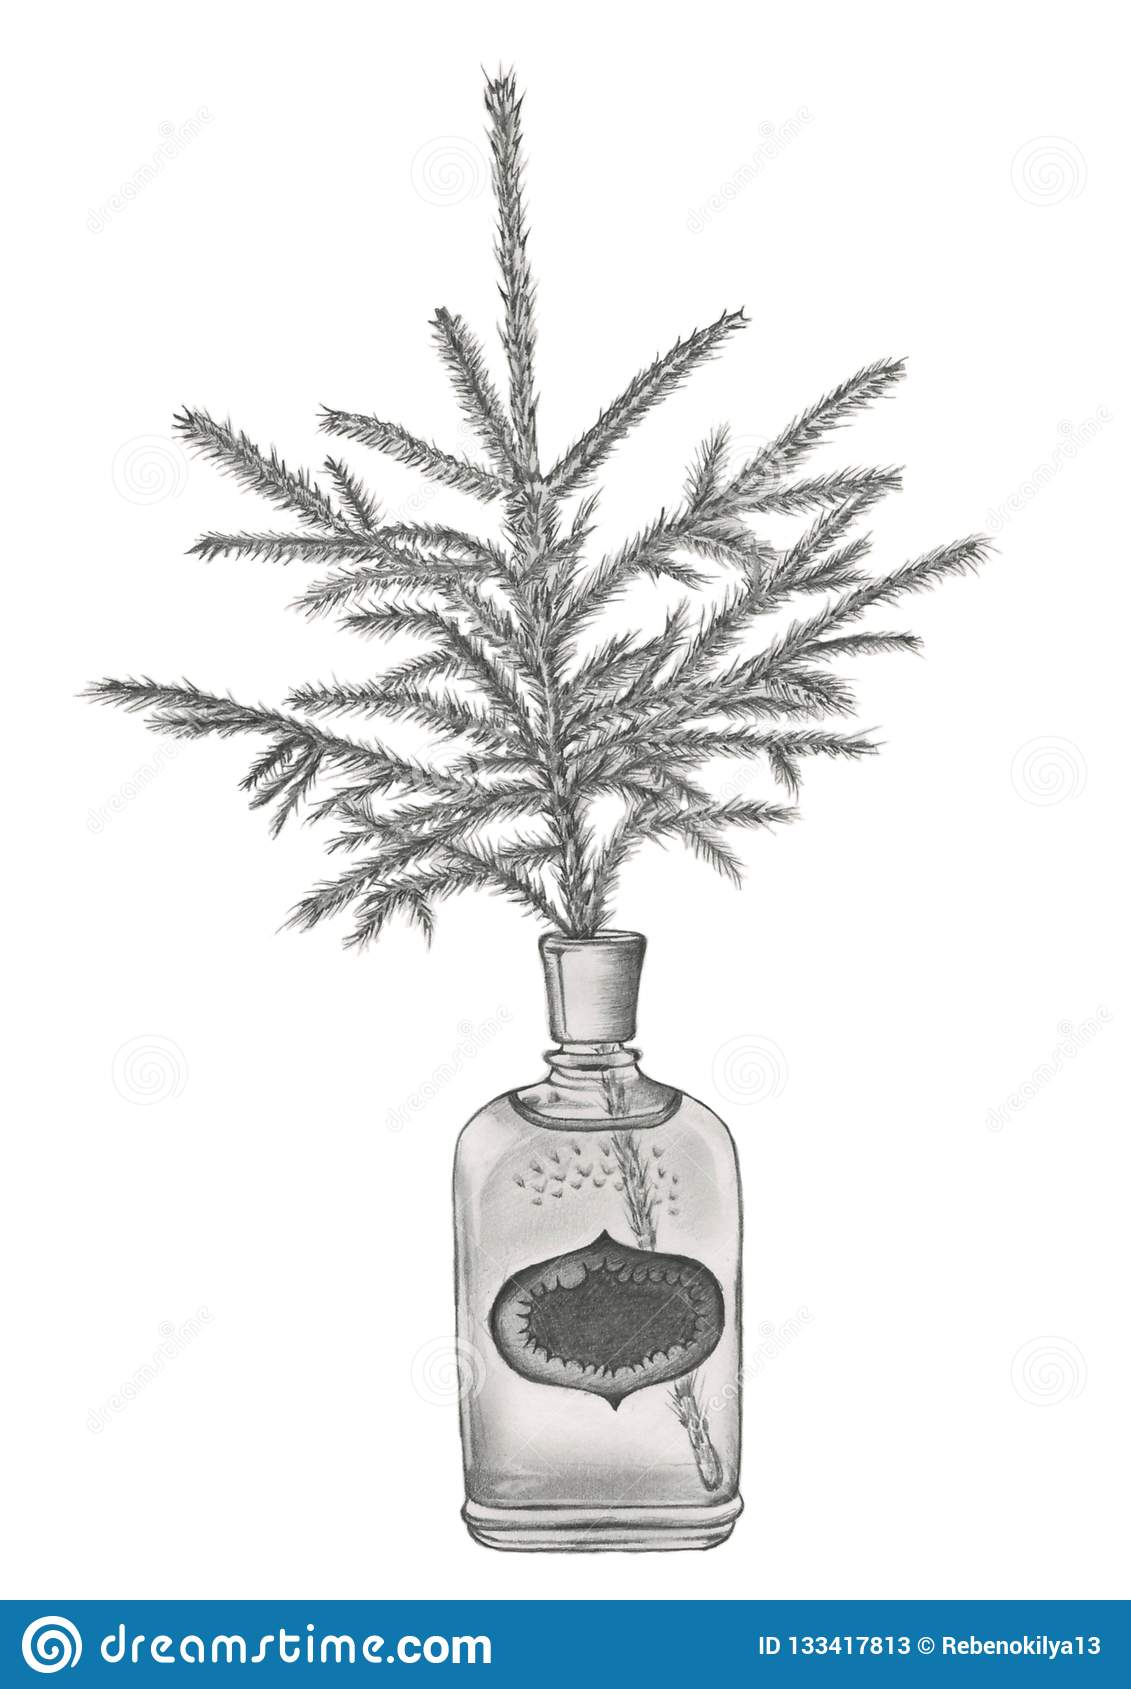 A spruce branch in the old fashioned perfume bottle